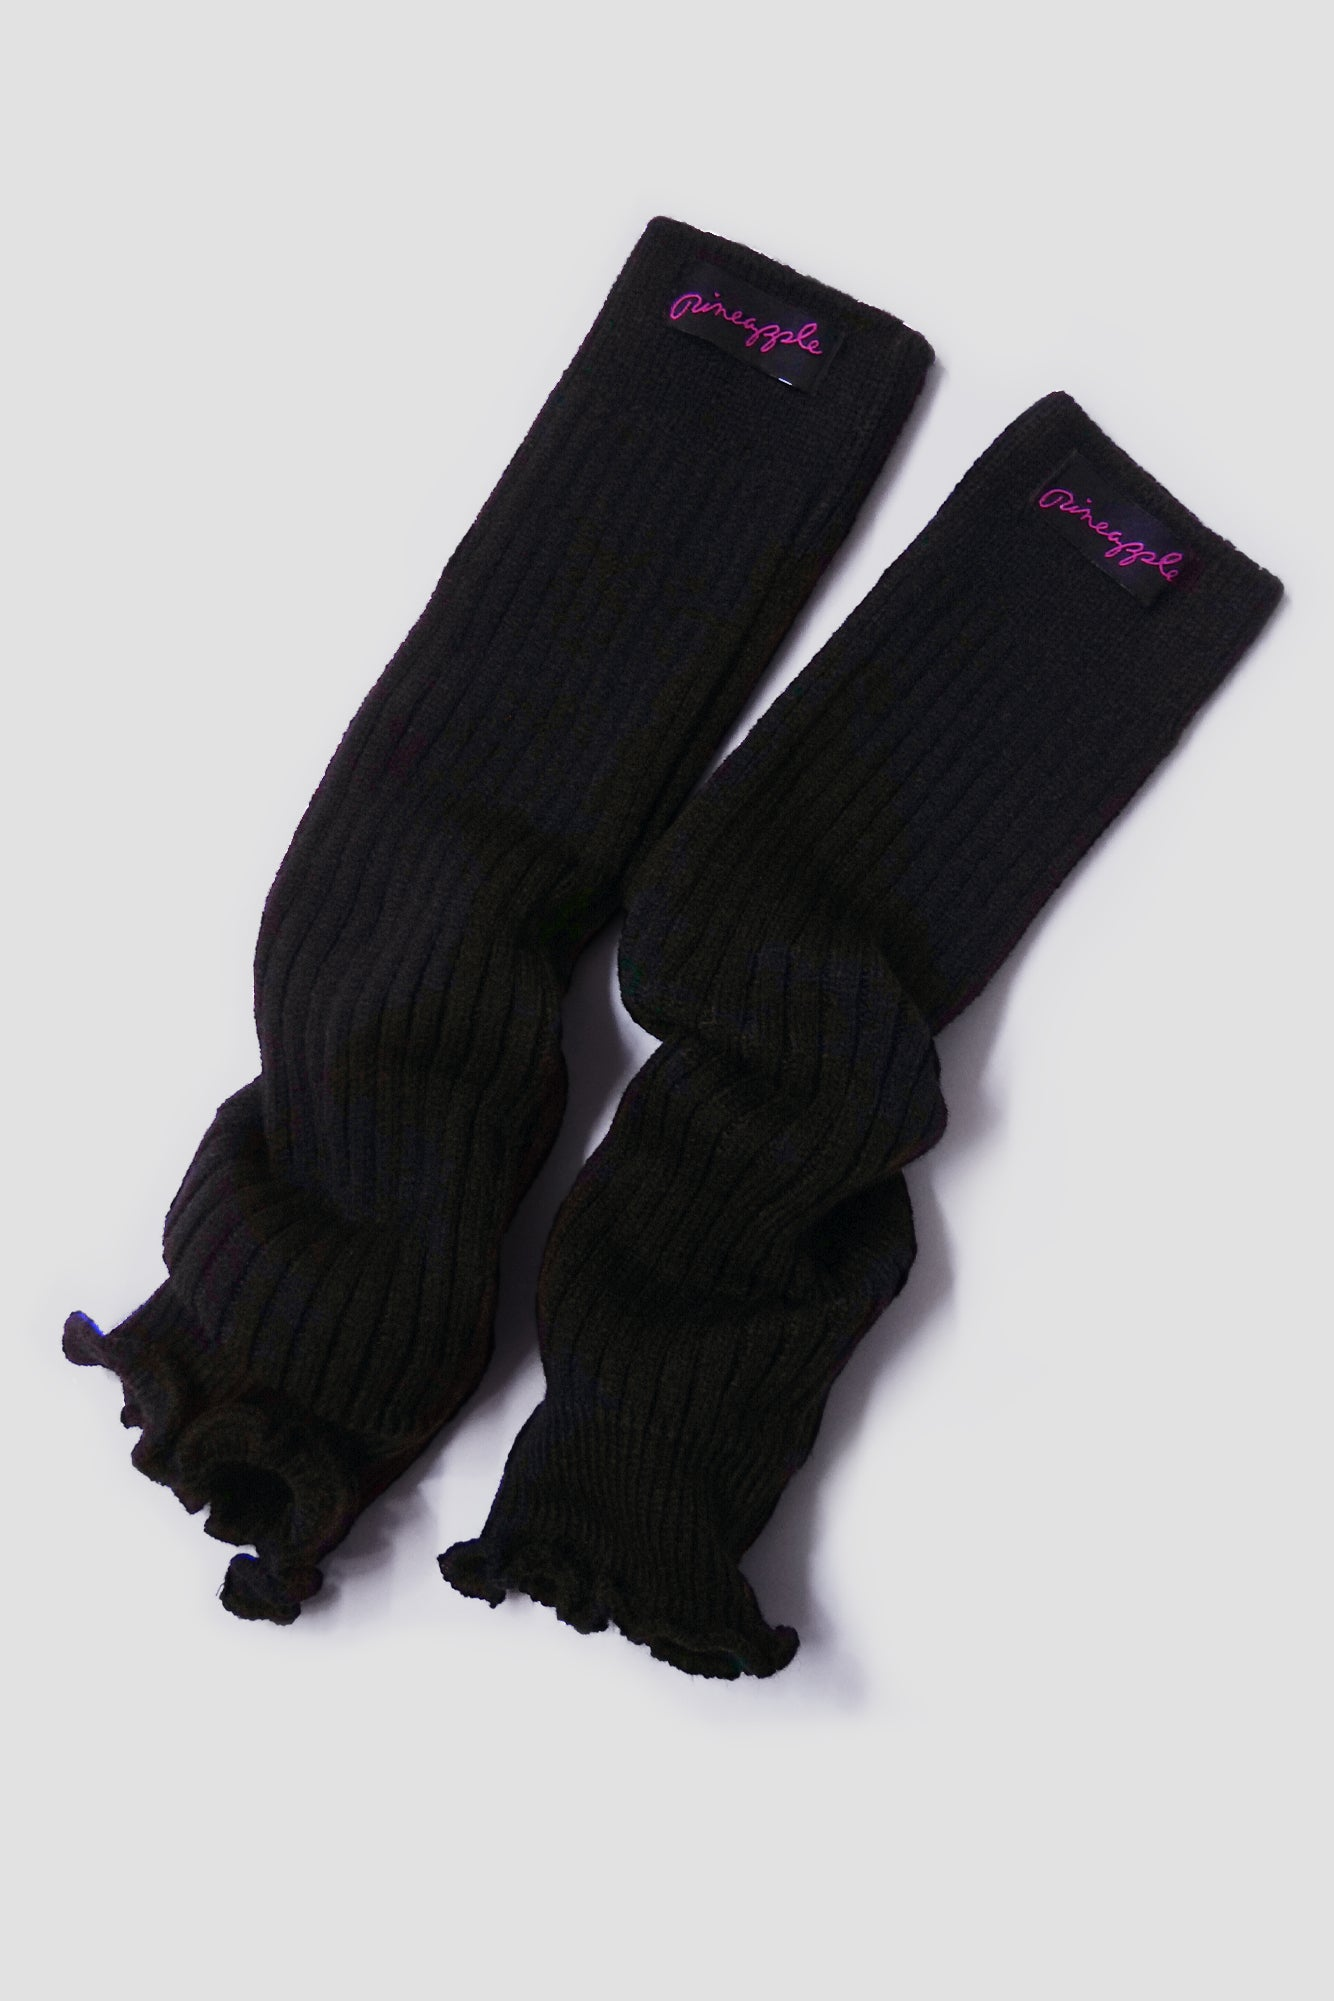 Pineapple Dance Black Leg Warmers